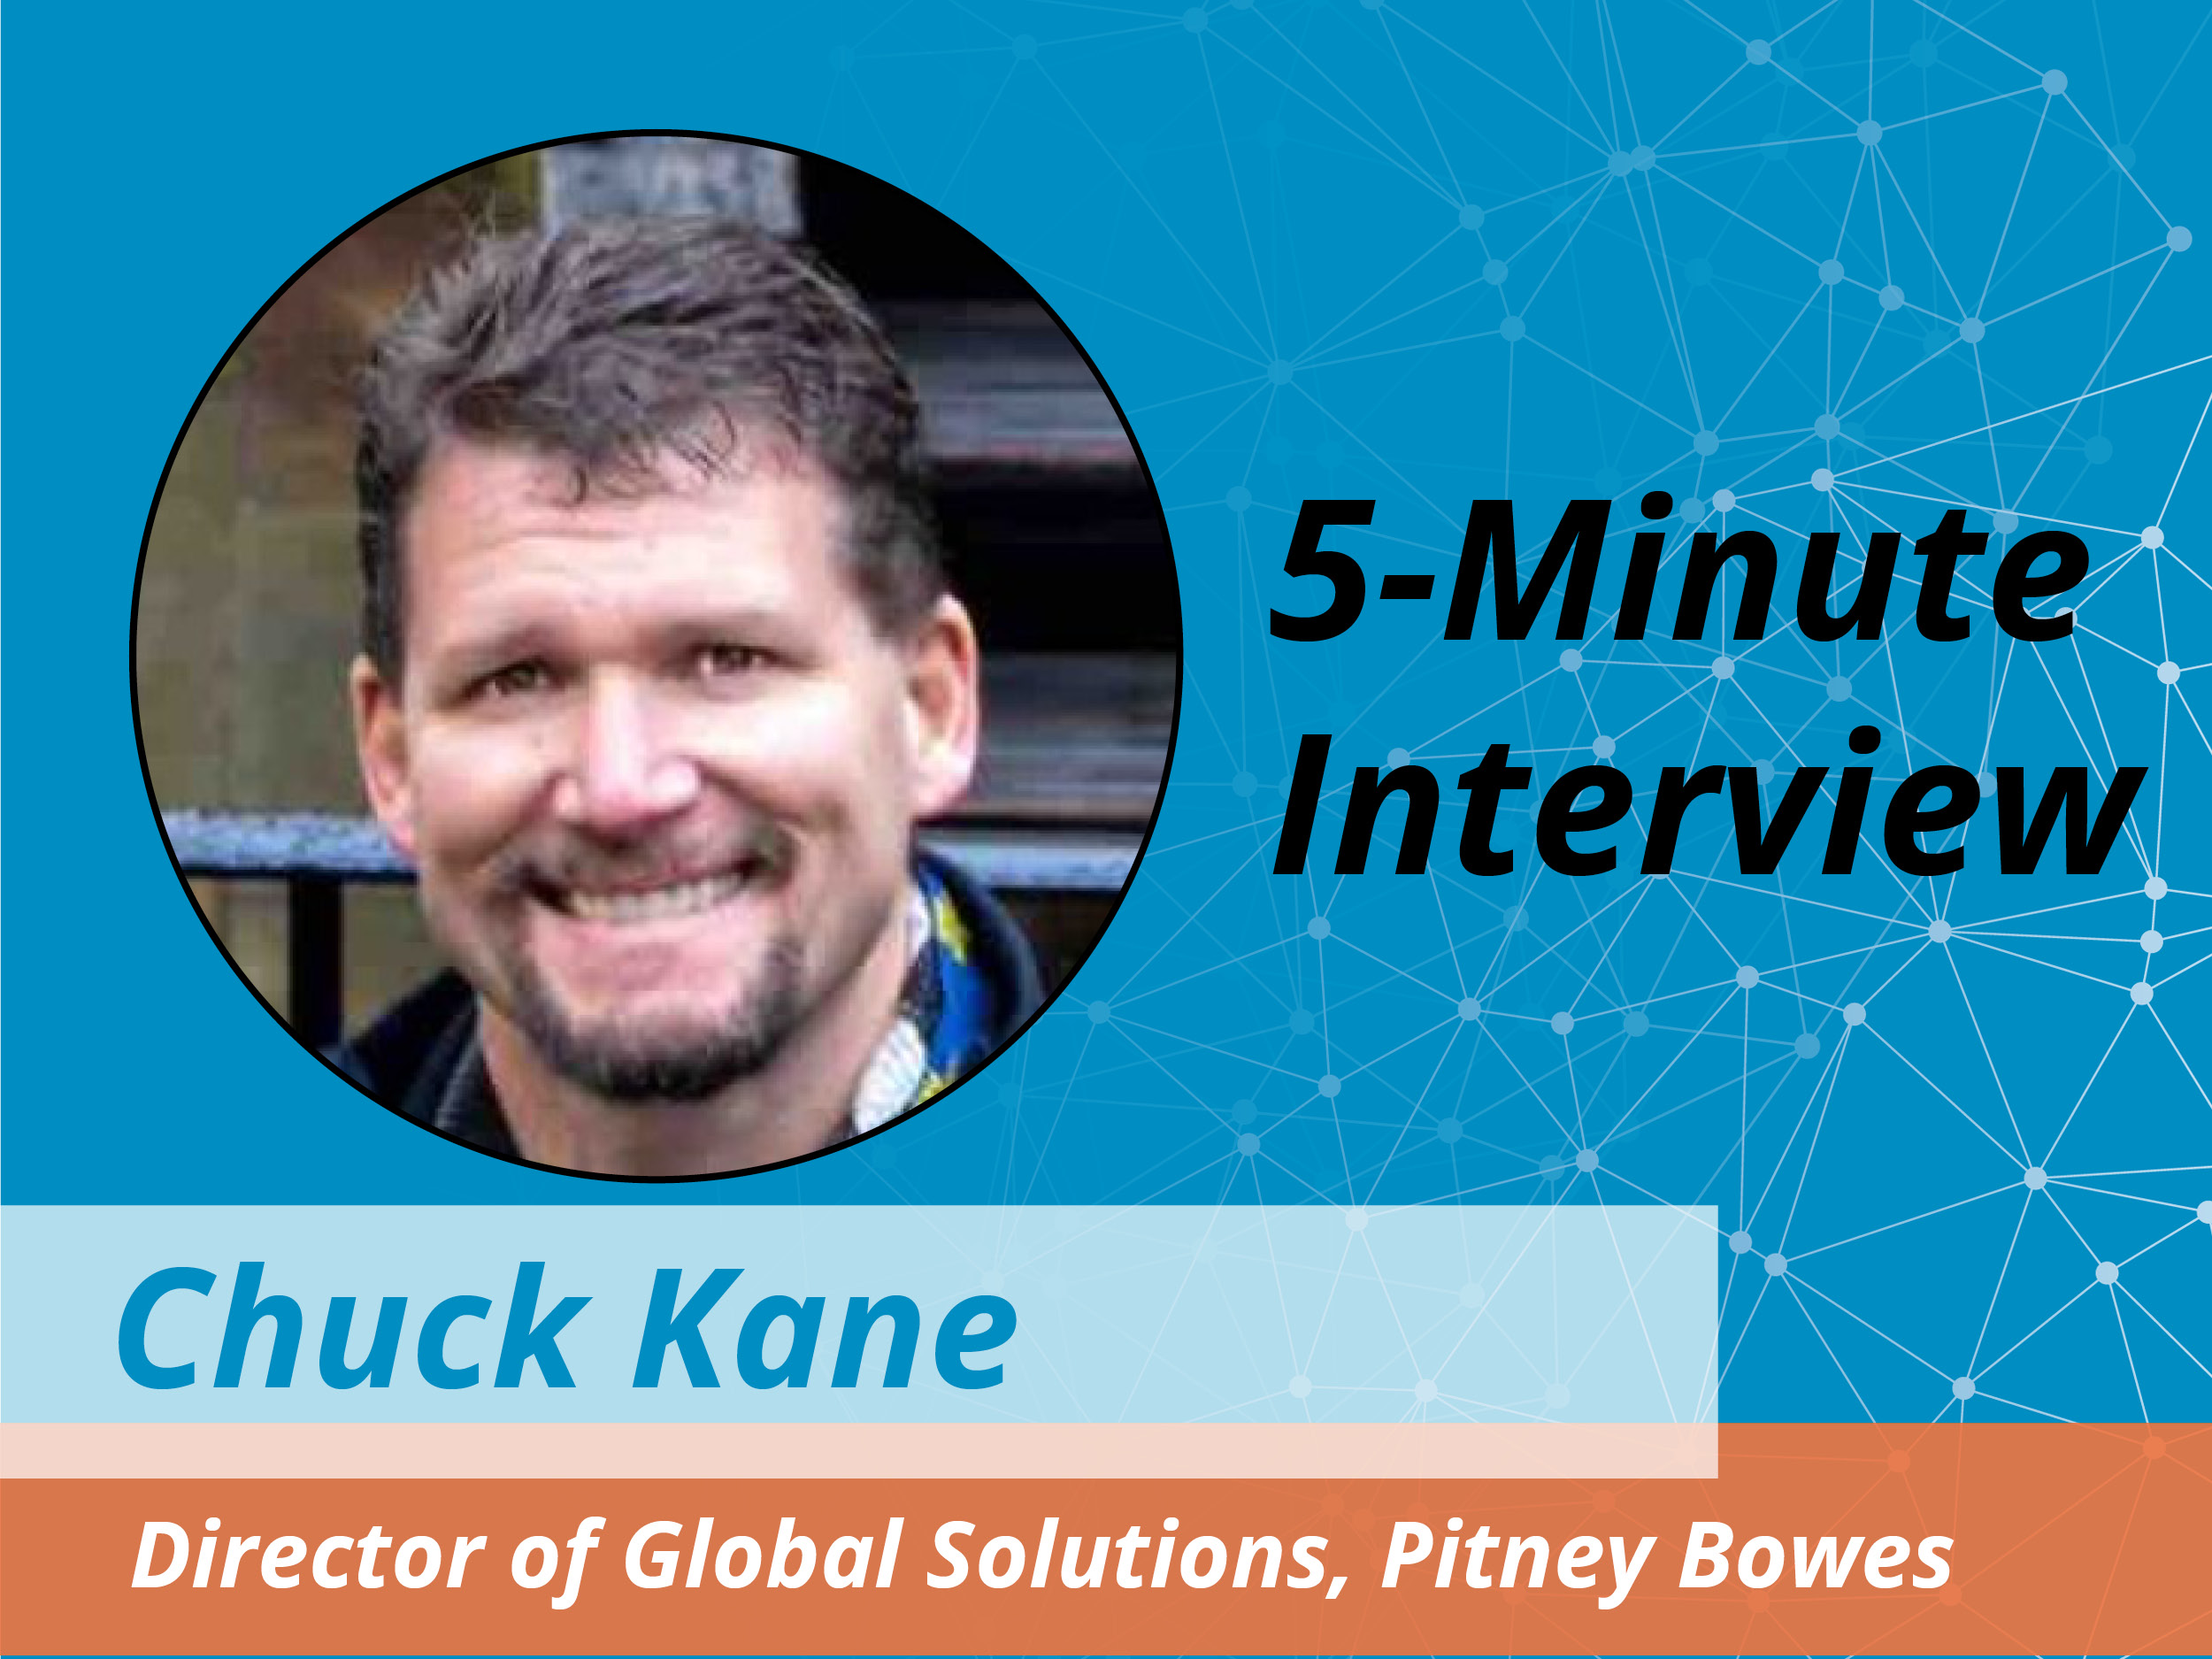 Catch this week's 5-Minute Interview with Chuck Kane, Director of Global Solutions at Pitney Bowes